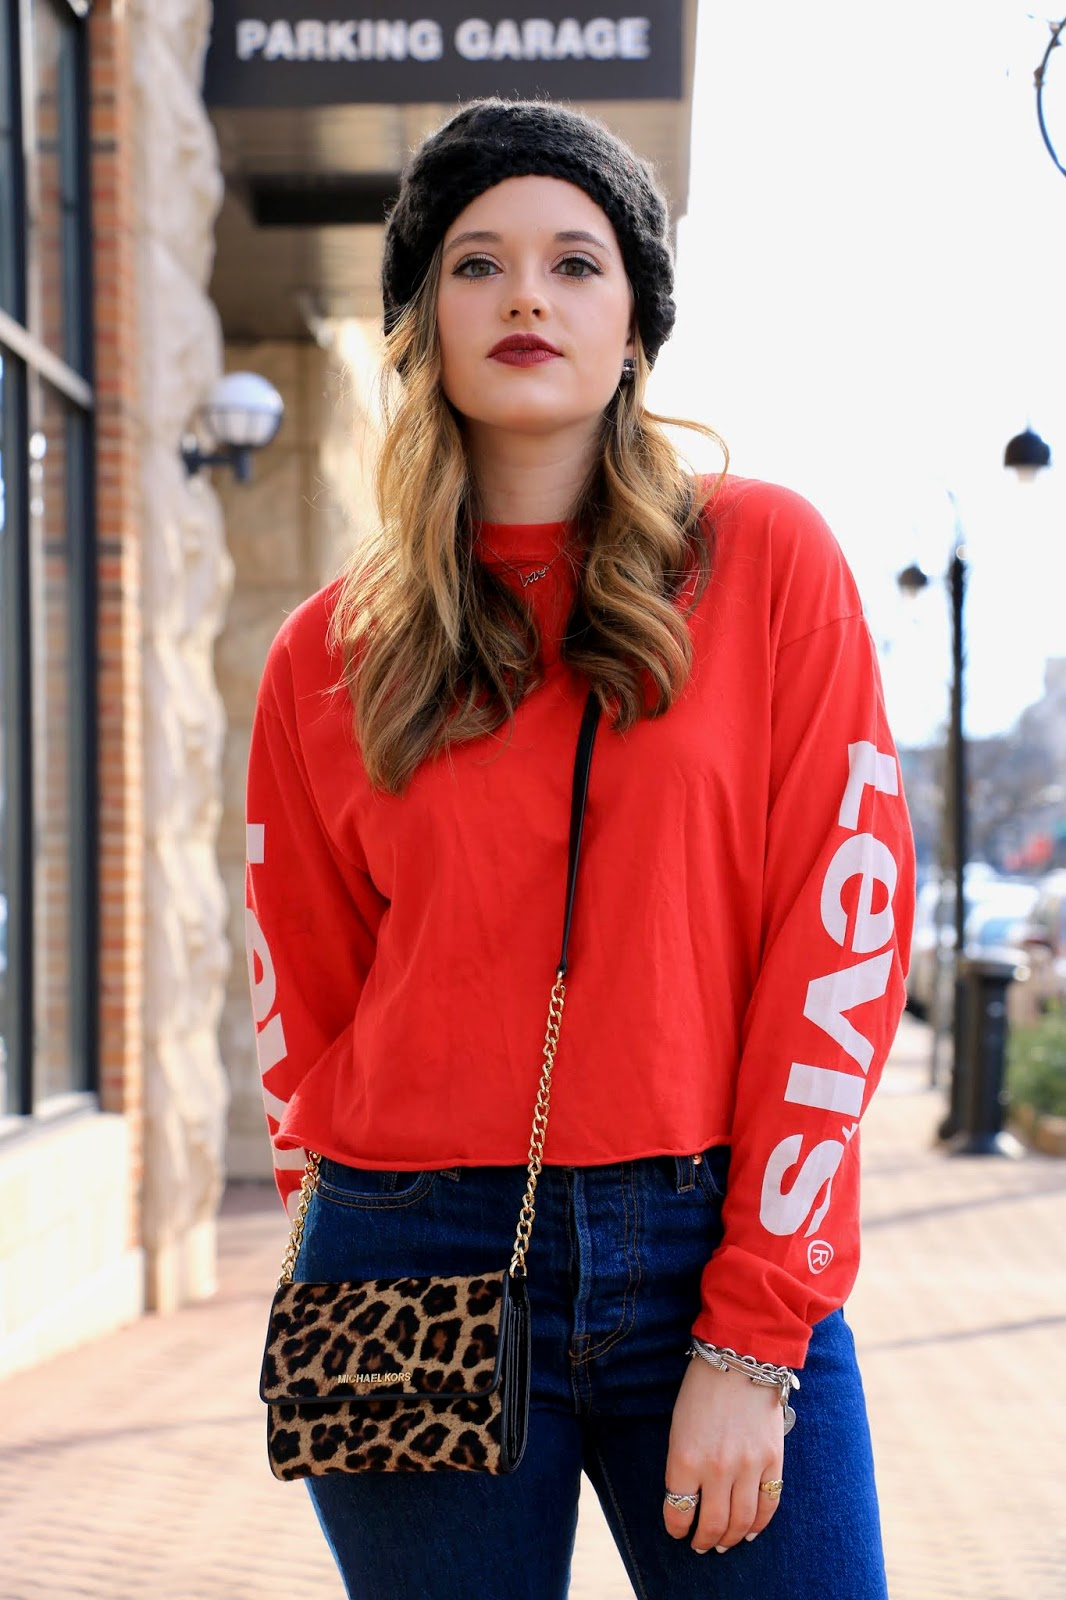 Nyc fashion blogger Kathleen Harper wearing a Levi's street style outfit